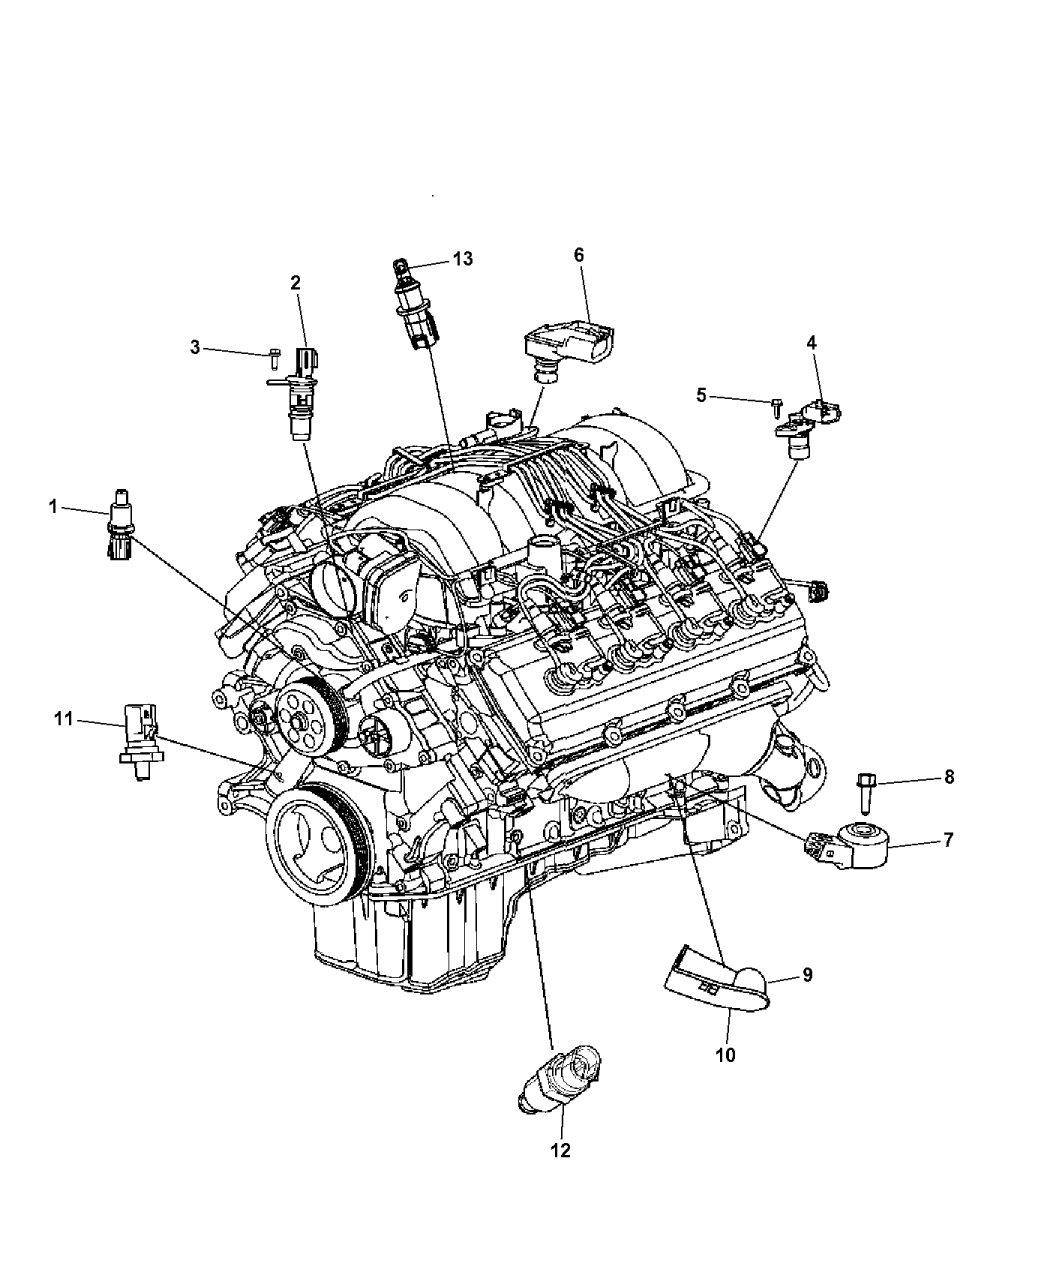 Dodge Engine Schematic